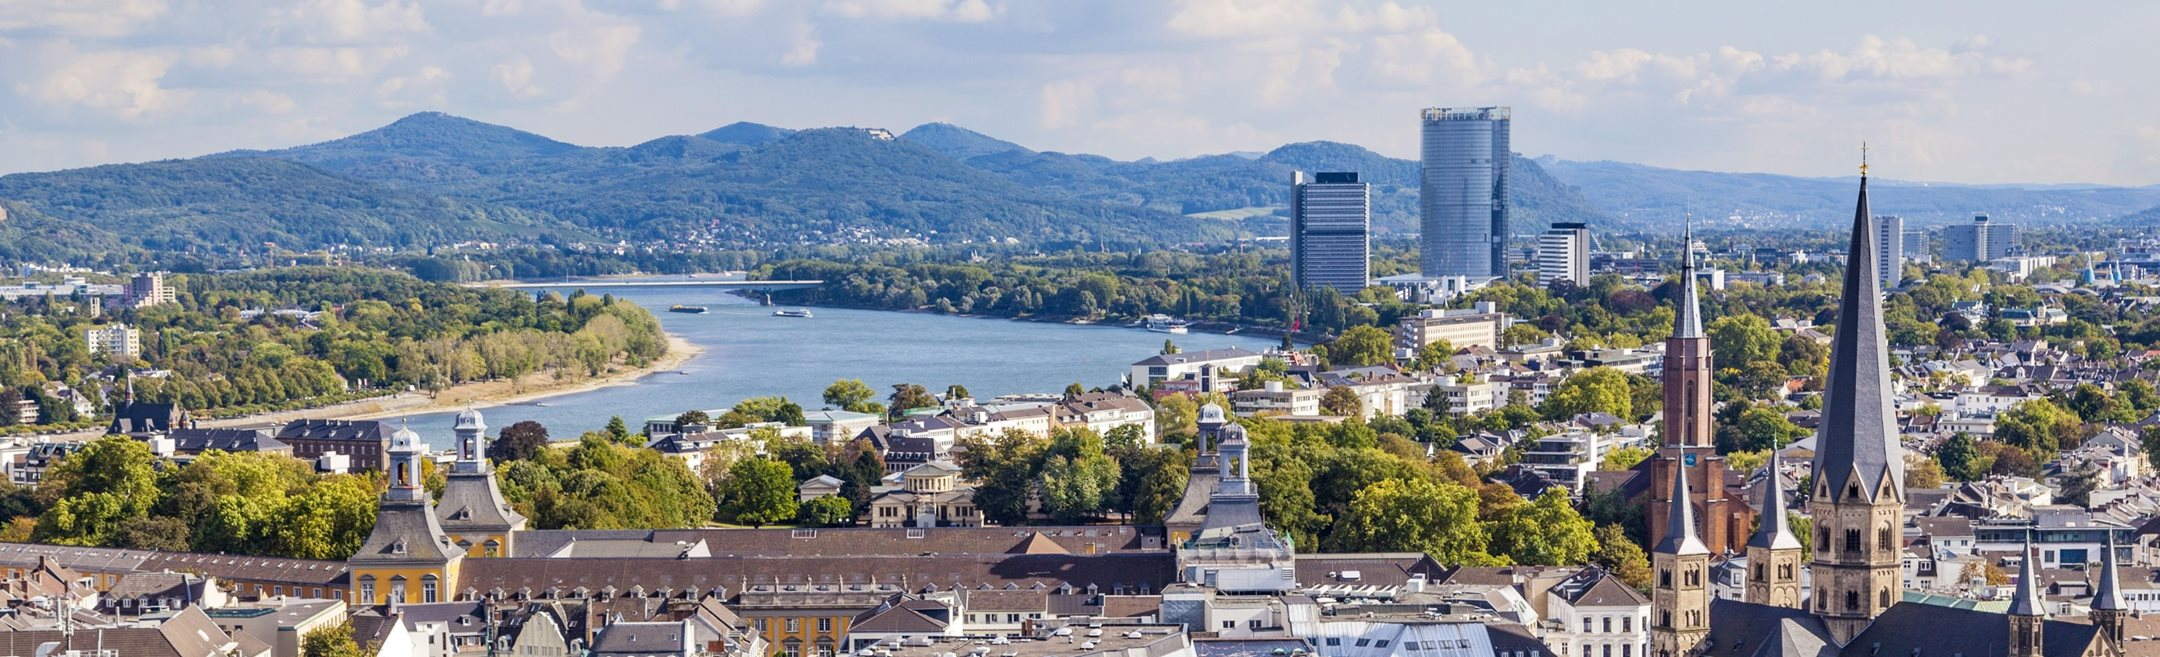 Focussing on unlocking climate finance at UN's 23rd Conference of the Parties in Bonn, Germany